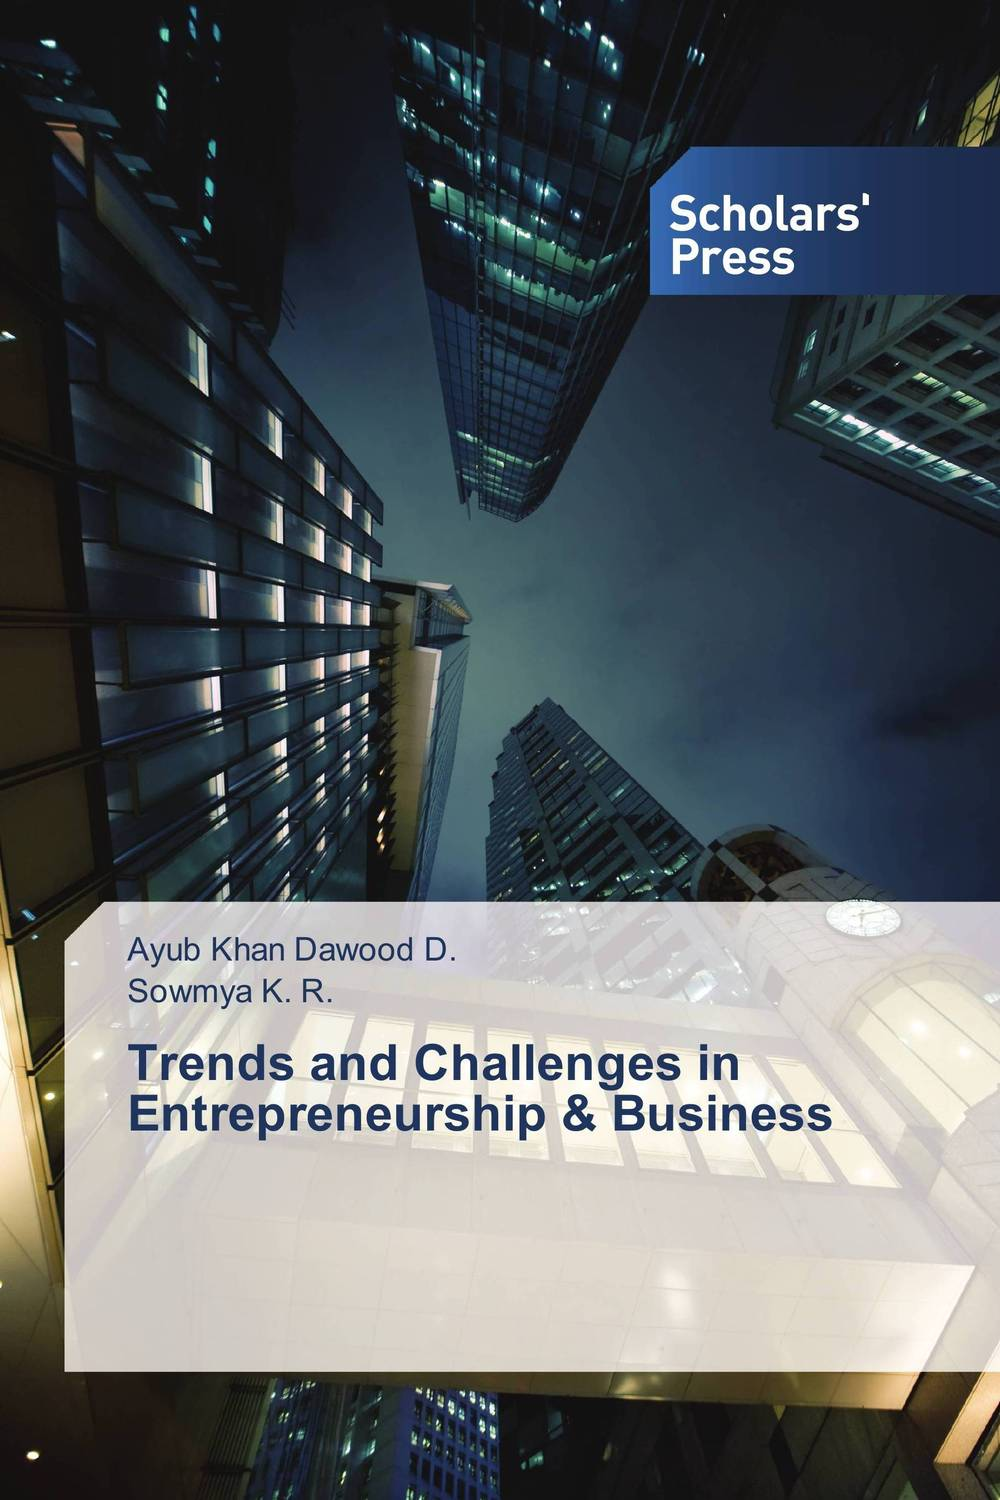 Trends and Challenges in Entrepreneurship & Business n giusti diffuse entrepreneurship and the very heart of made in italy for fashion and luxury goods